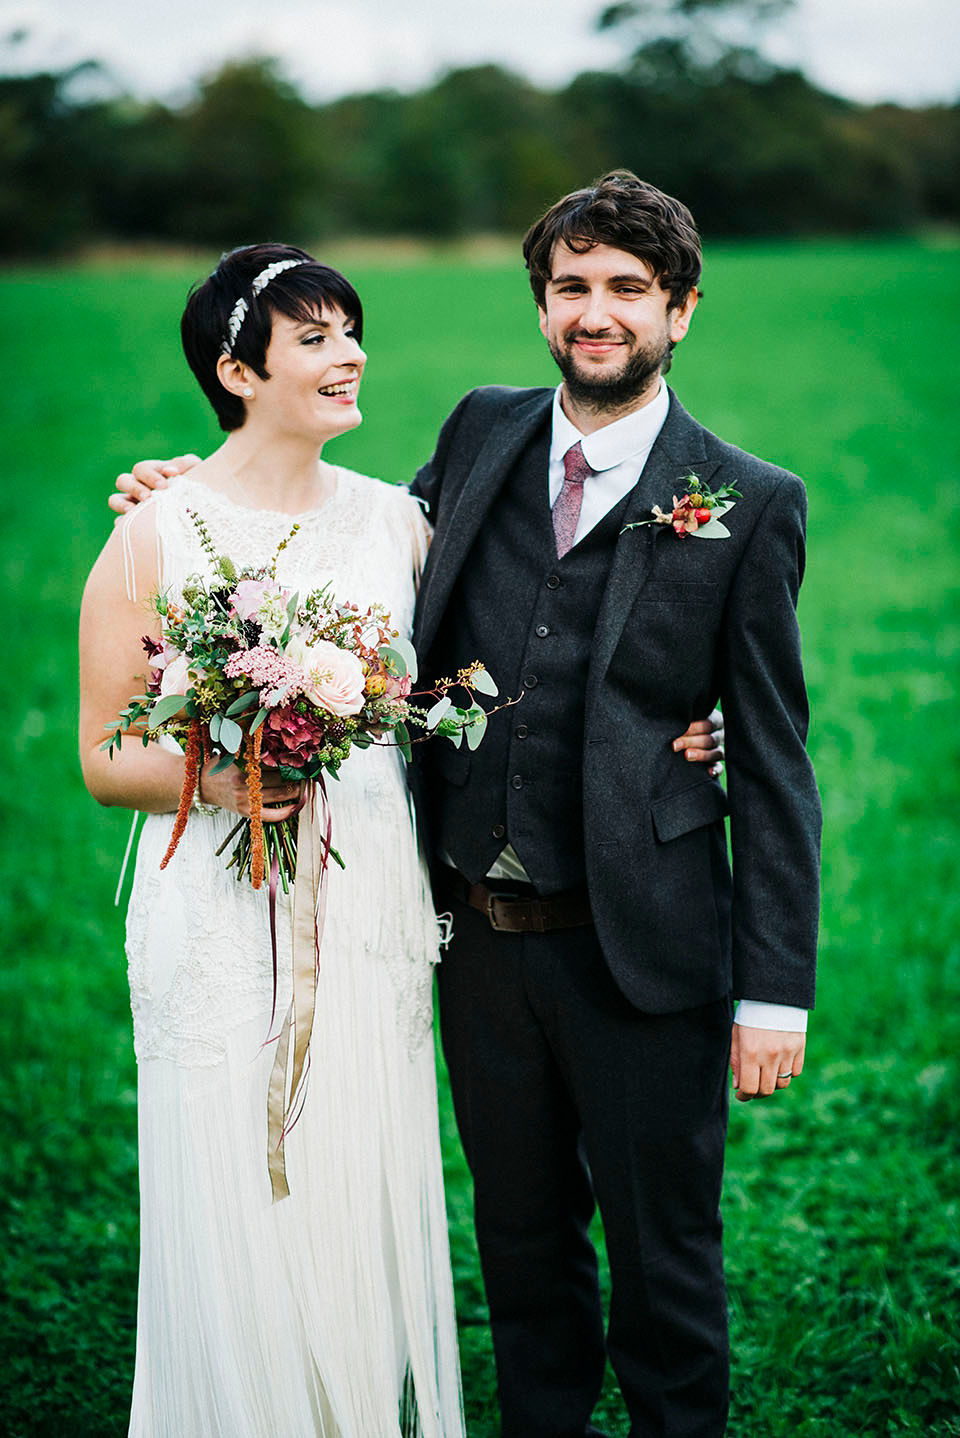 A 1920's Inspired Phase Eight Tasseled Dress For a Flower-Filled Autumn Wedding